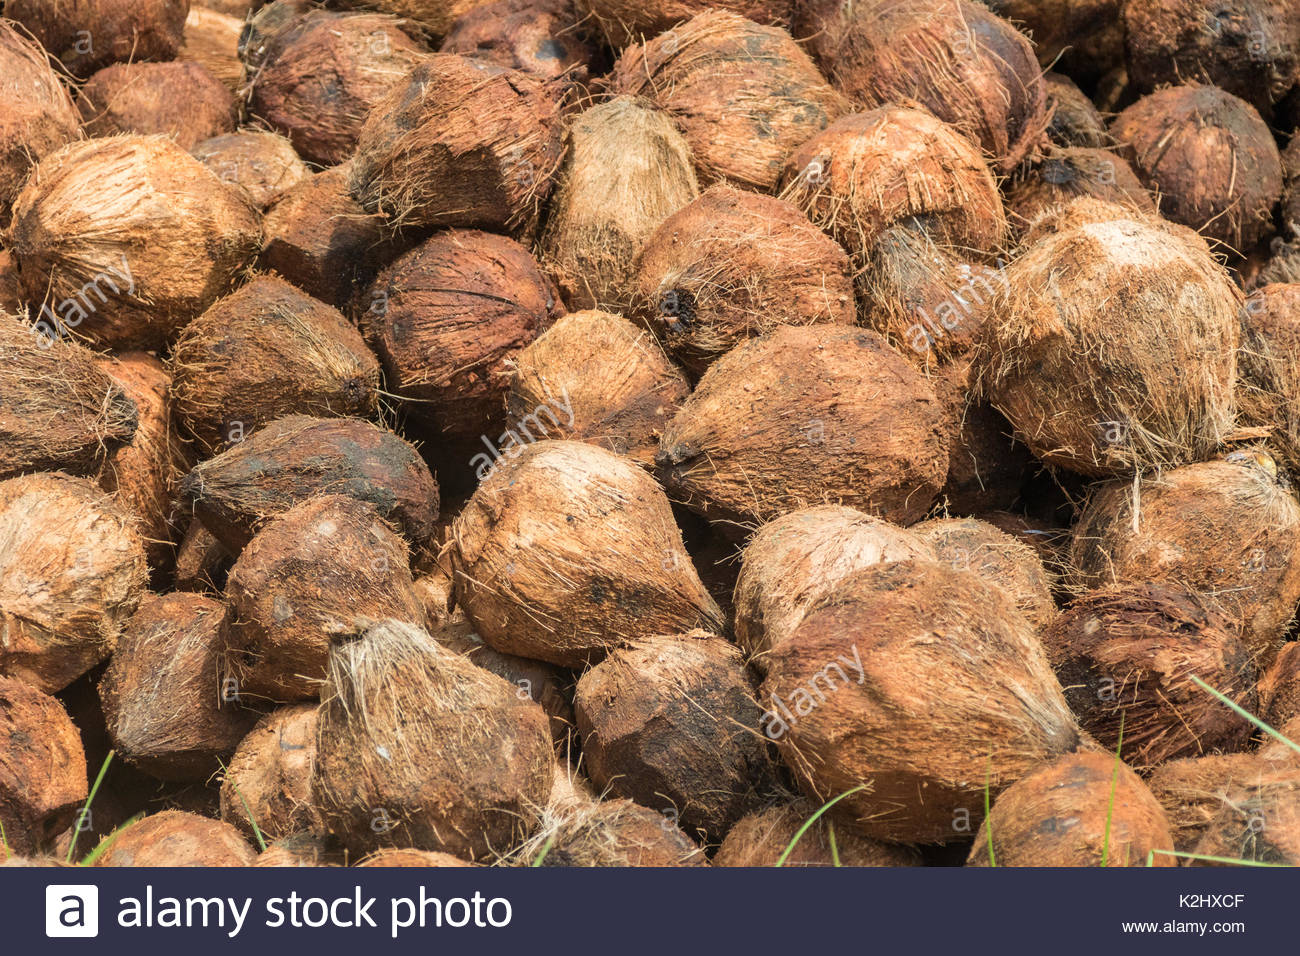 Coconuts with their husks chopped off - Stock Image